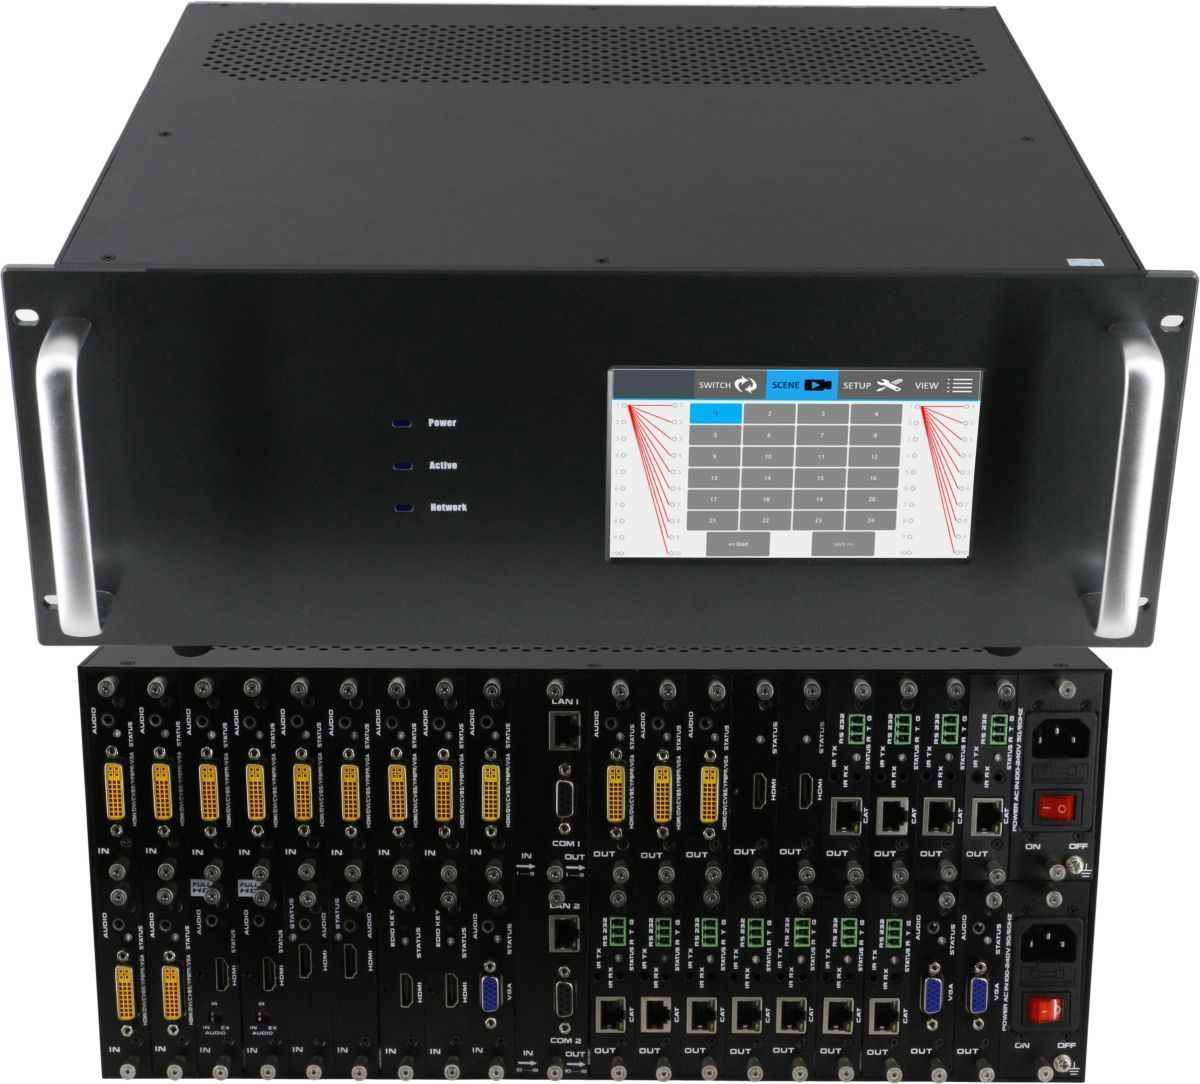 6x6 HDMI Matrix Switcher with a Touchscreen in 18x18 Chassis